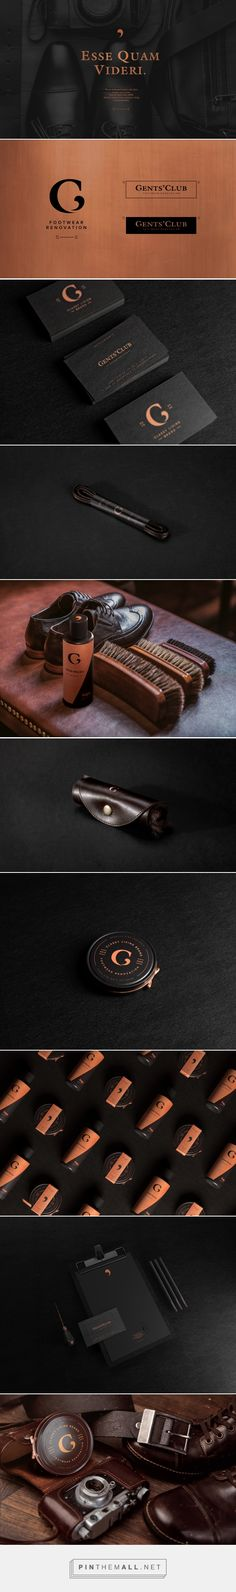 Gents Club Branding and Packaging by Tough Slate Design | Fivestar Branding Agency – Design and Branding Agency & Curated Inspiration Gallery